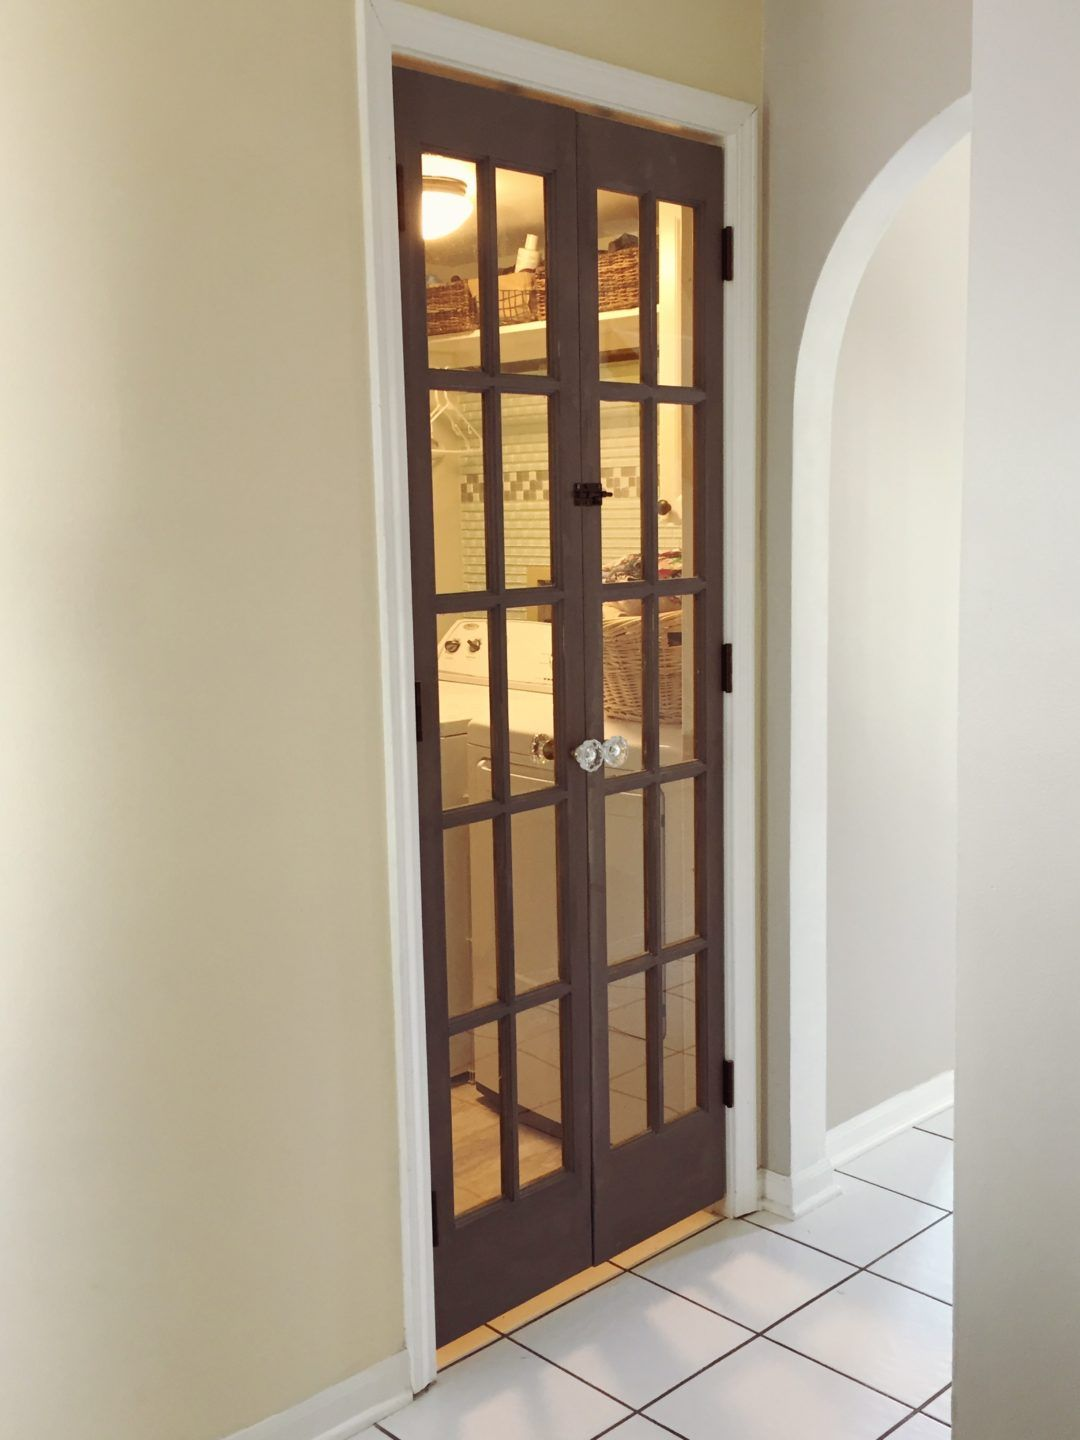 Brandnewell Designs: Turning Bifolds Into French Doors